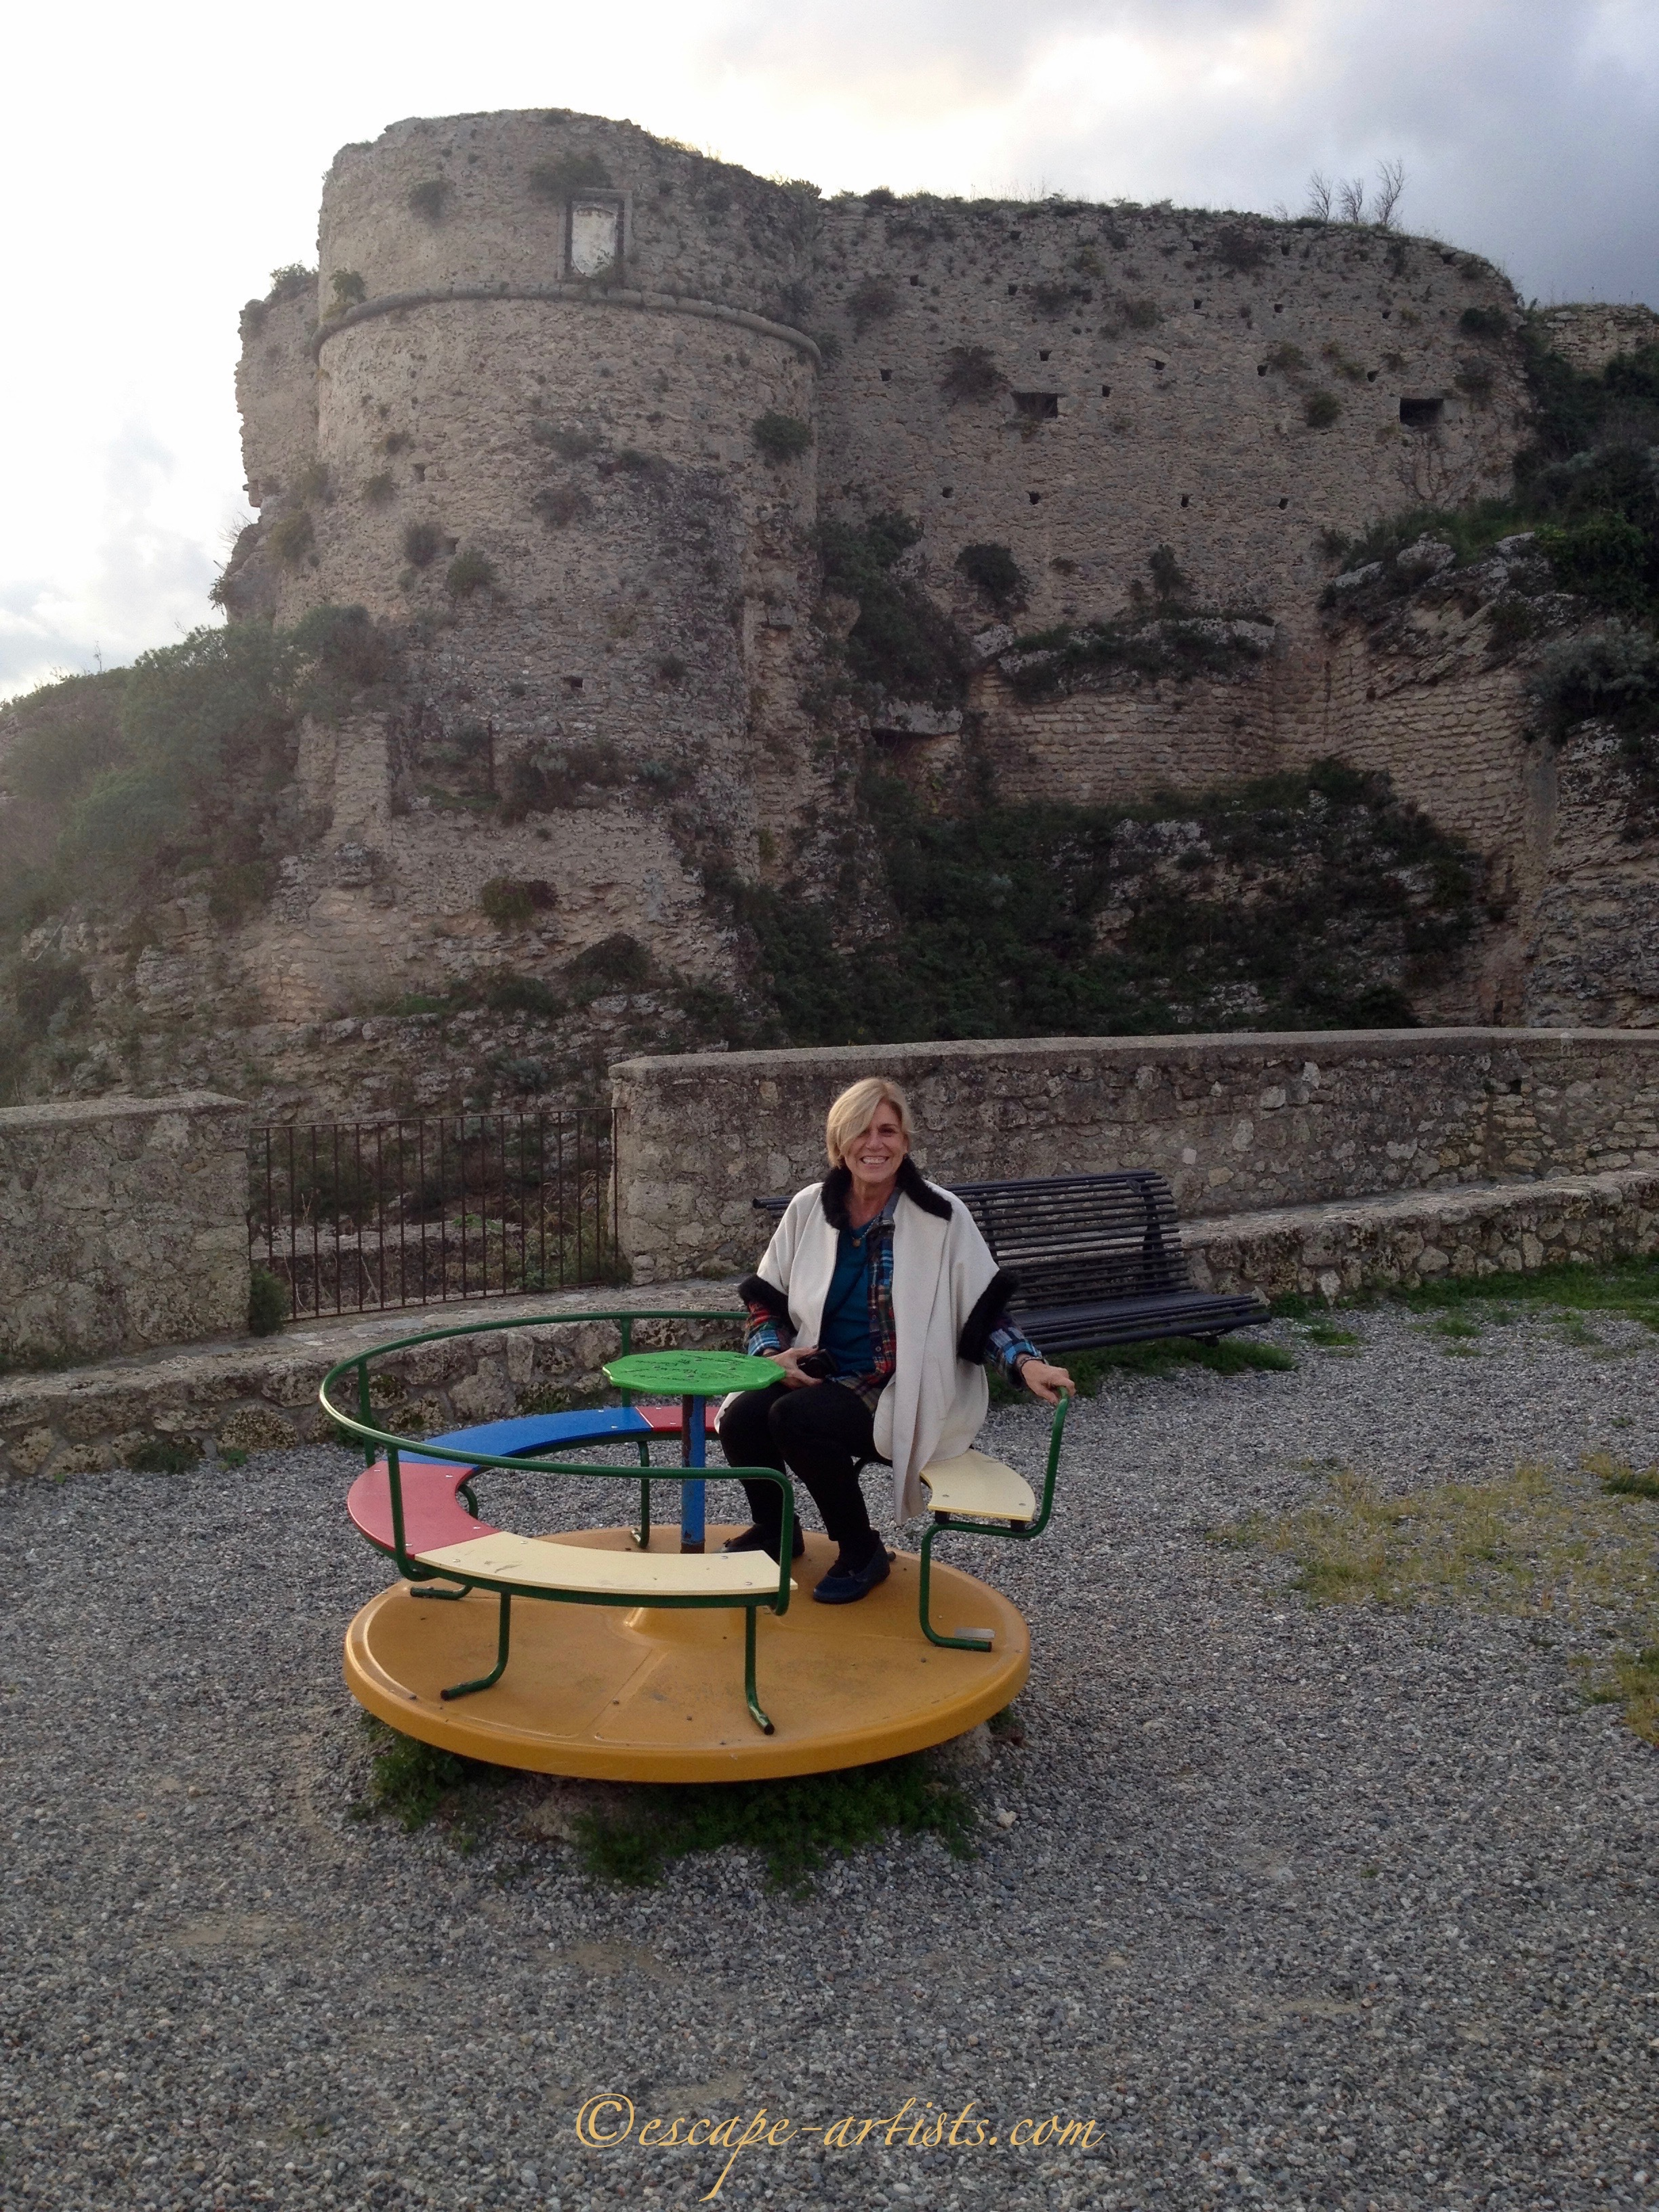 This little Escape Artist playing in her ancestral town of Gerace